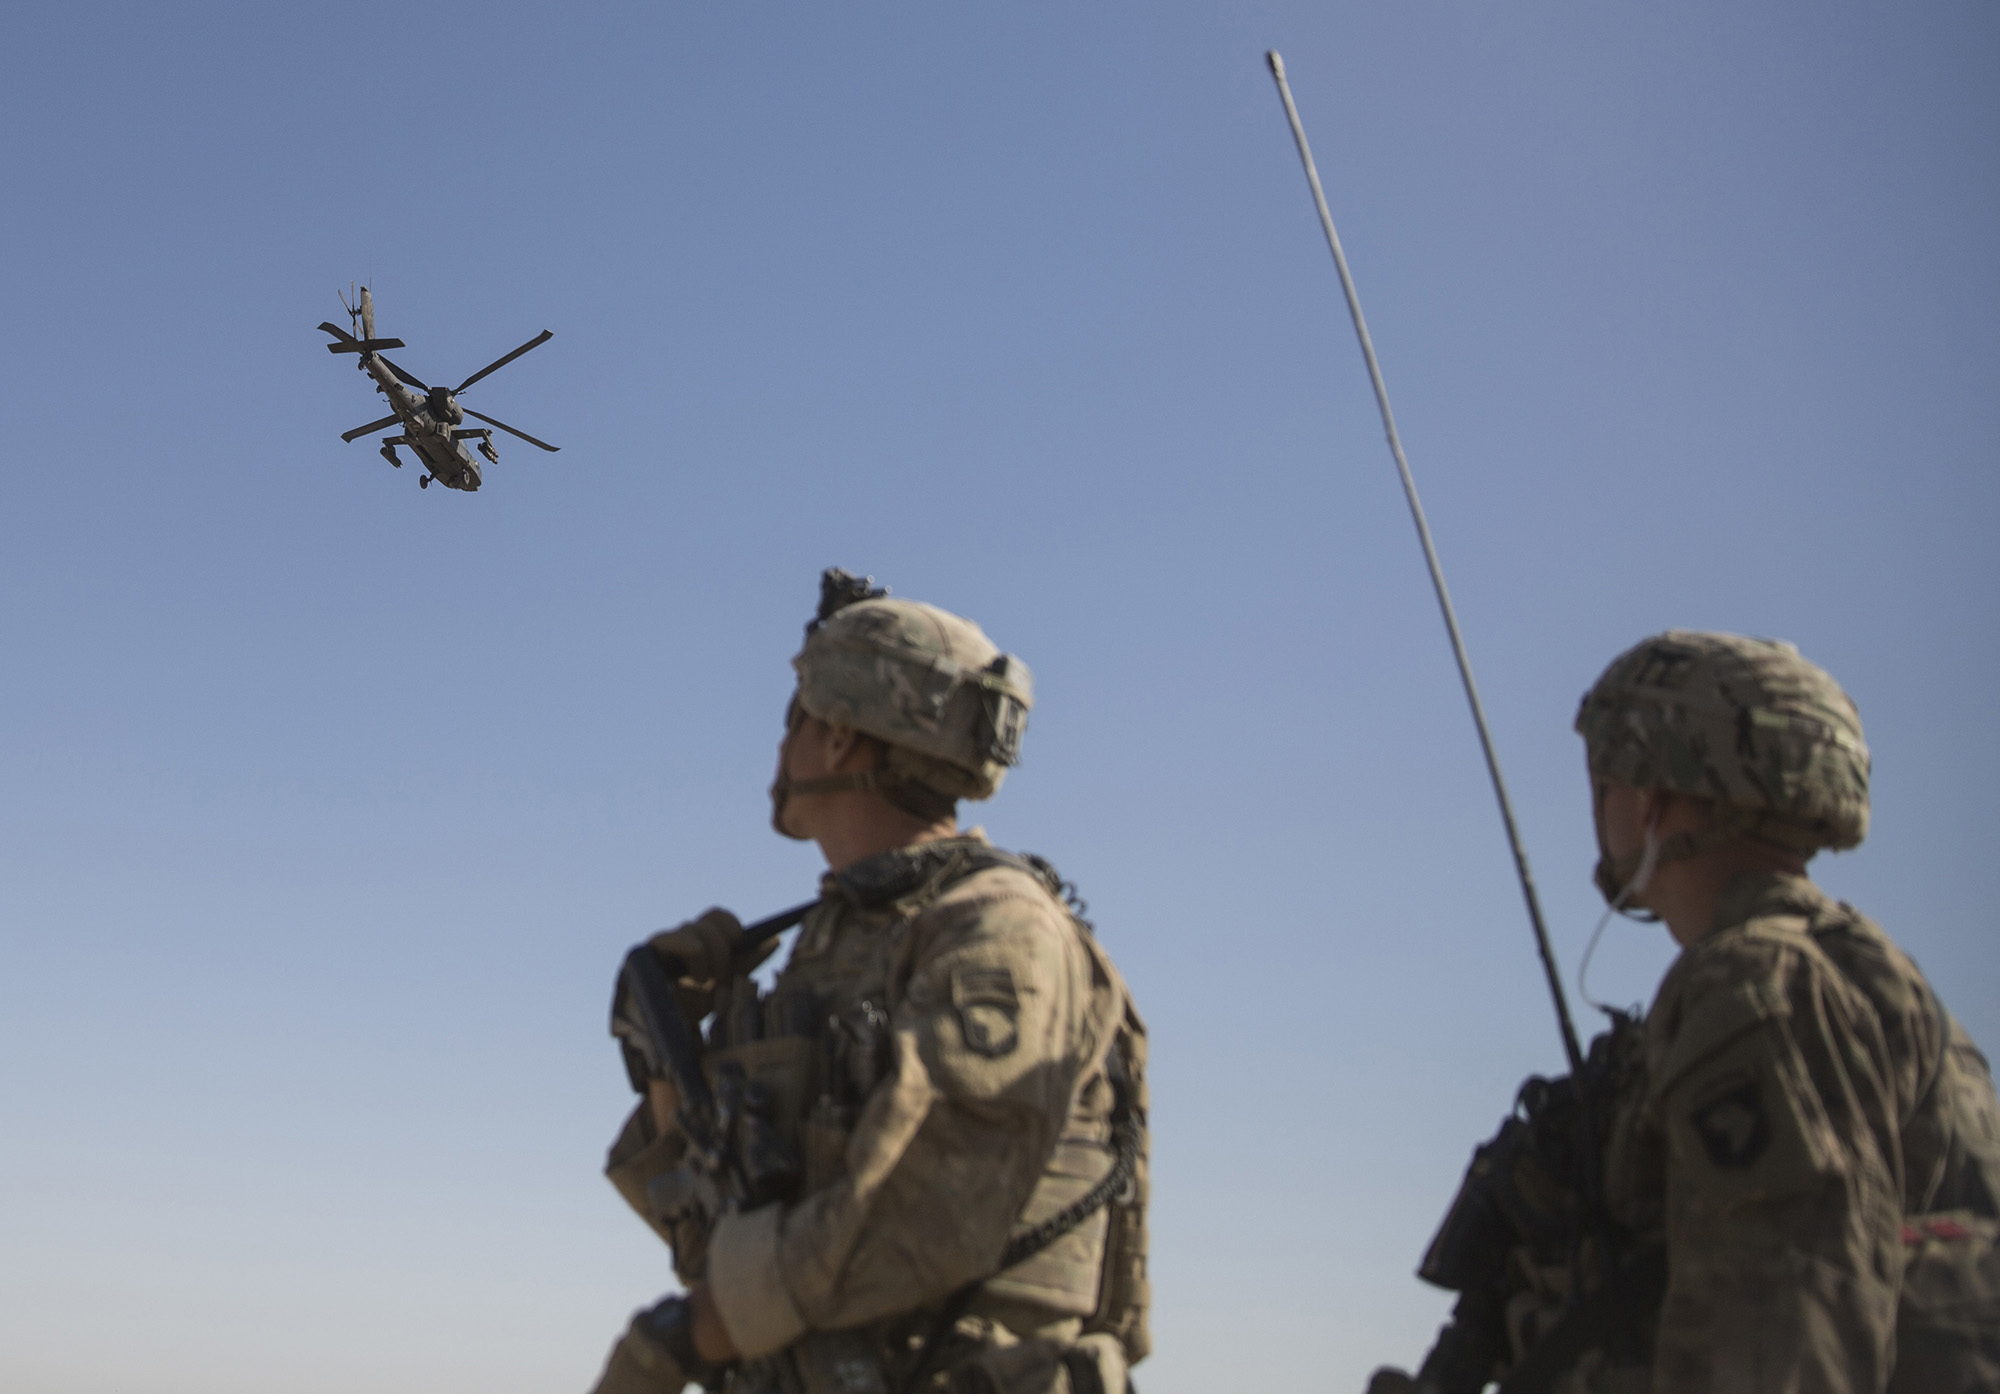 An AH-64 Apache attack helicopter provides security from above while CH-47 Chinooks drop off supplies to U.S. soldiers on June 10, 2017, at Bost Airfield, Afghanistan. (Sgt. Justin T. Updegraff/U.S. Marine Corps via AP)